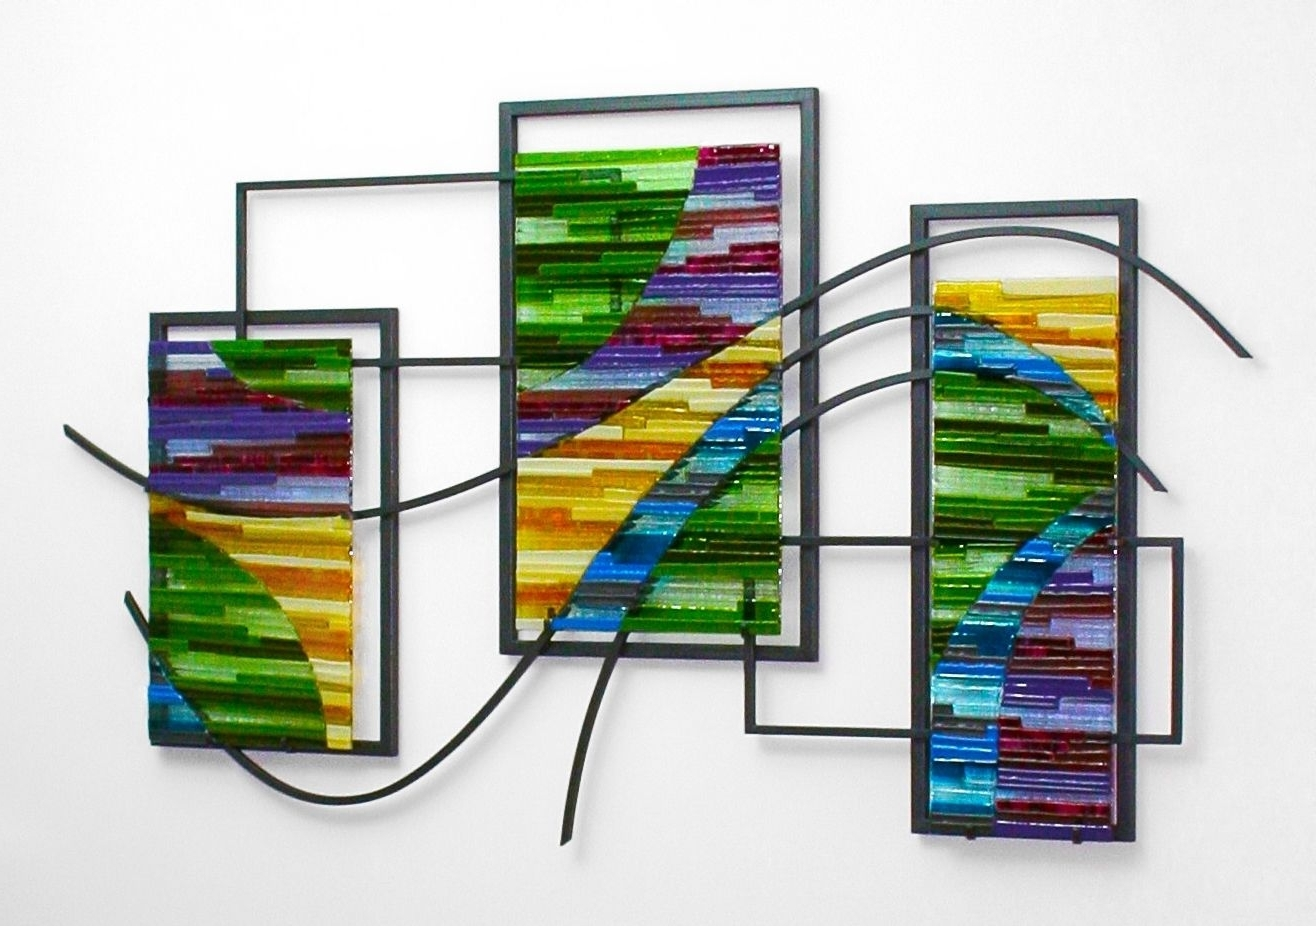 Custom Made Fused Glass And Metal Wall Artbonnie M. Hinz Regarding Most Recently Released Glass Wall Art (Gallery 15 of 15)